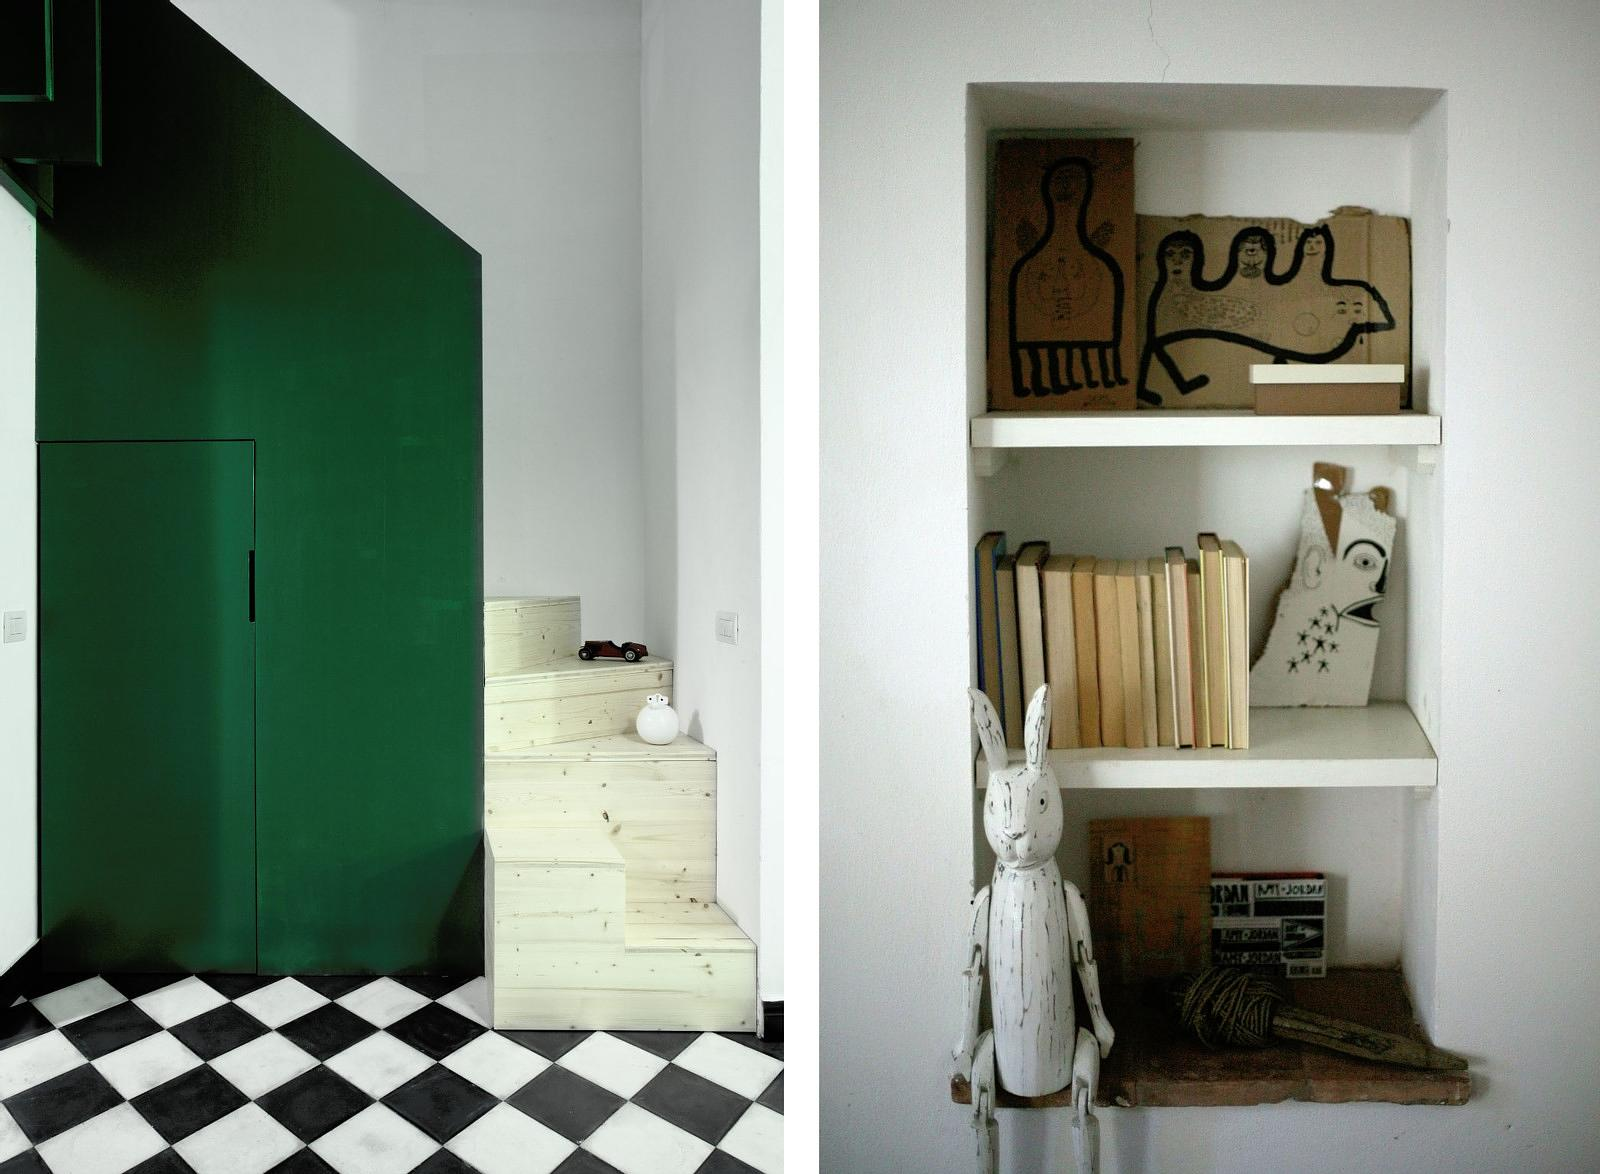 Home and studio of architect and designer Elena Cerizza – Object in a recessed bookshelf.